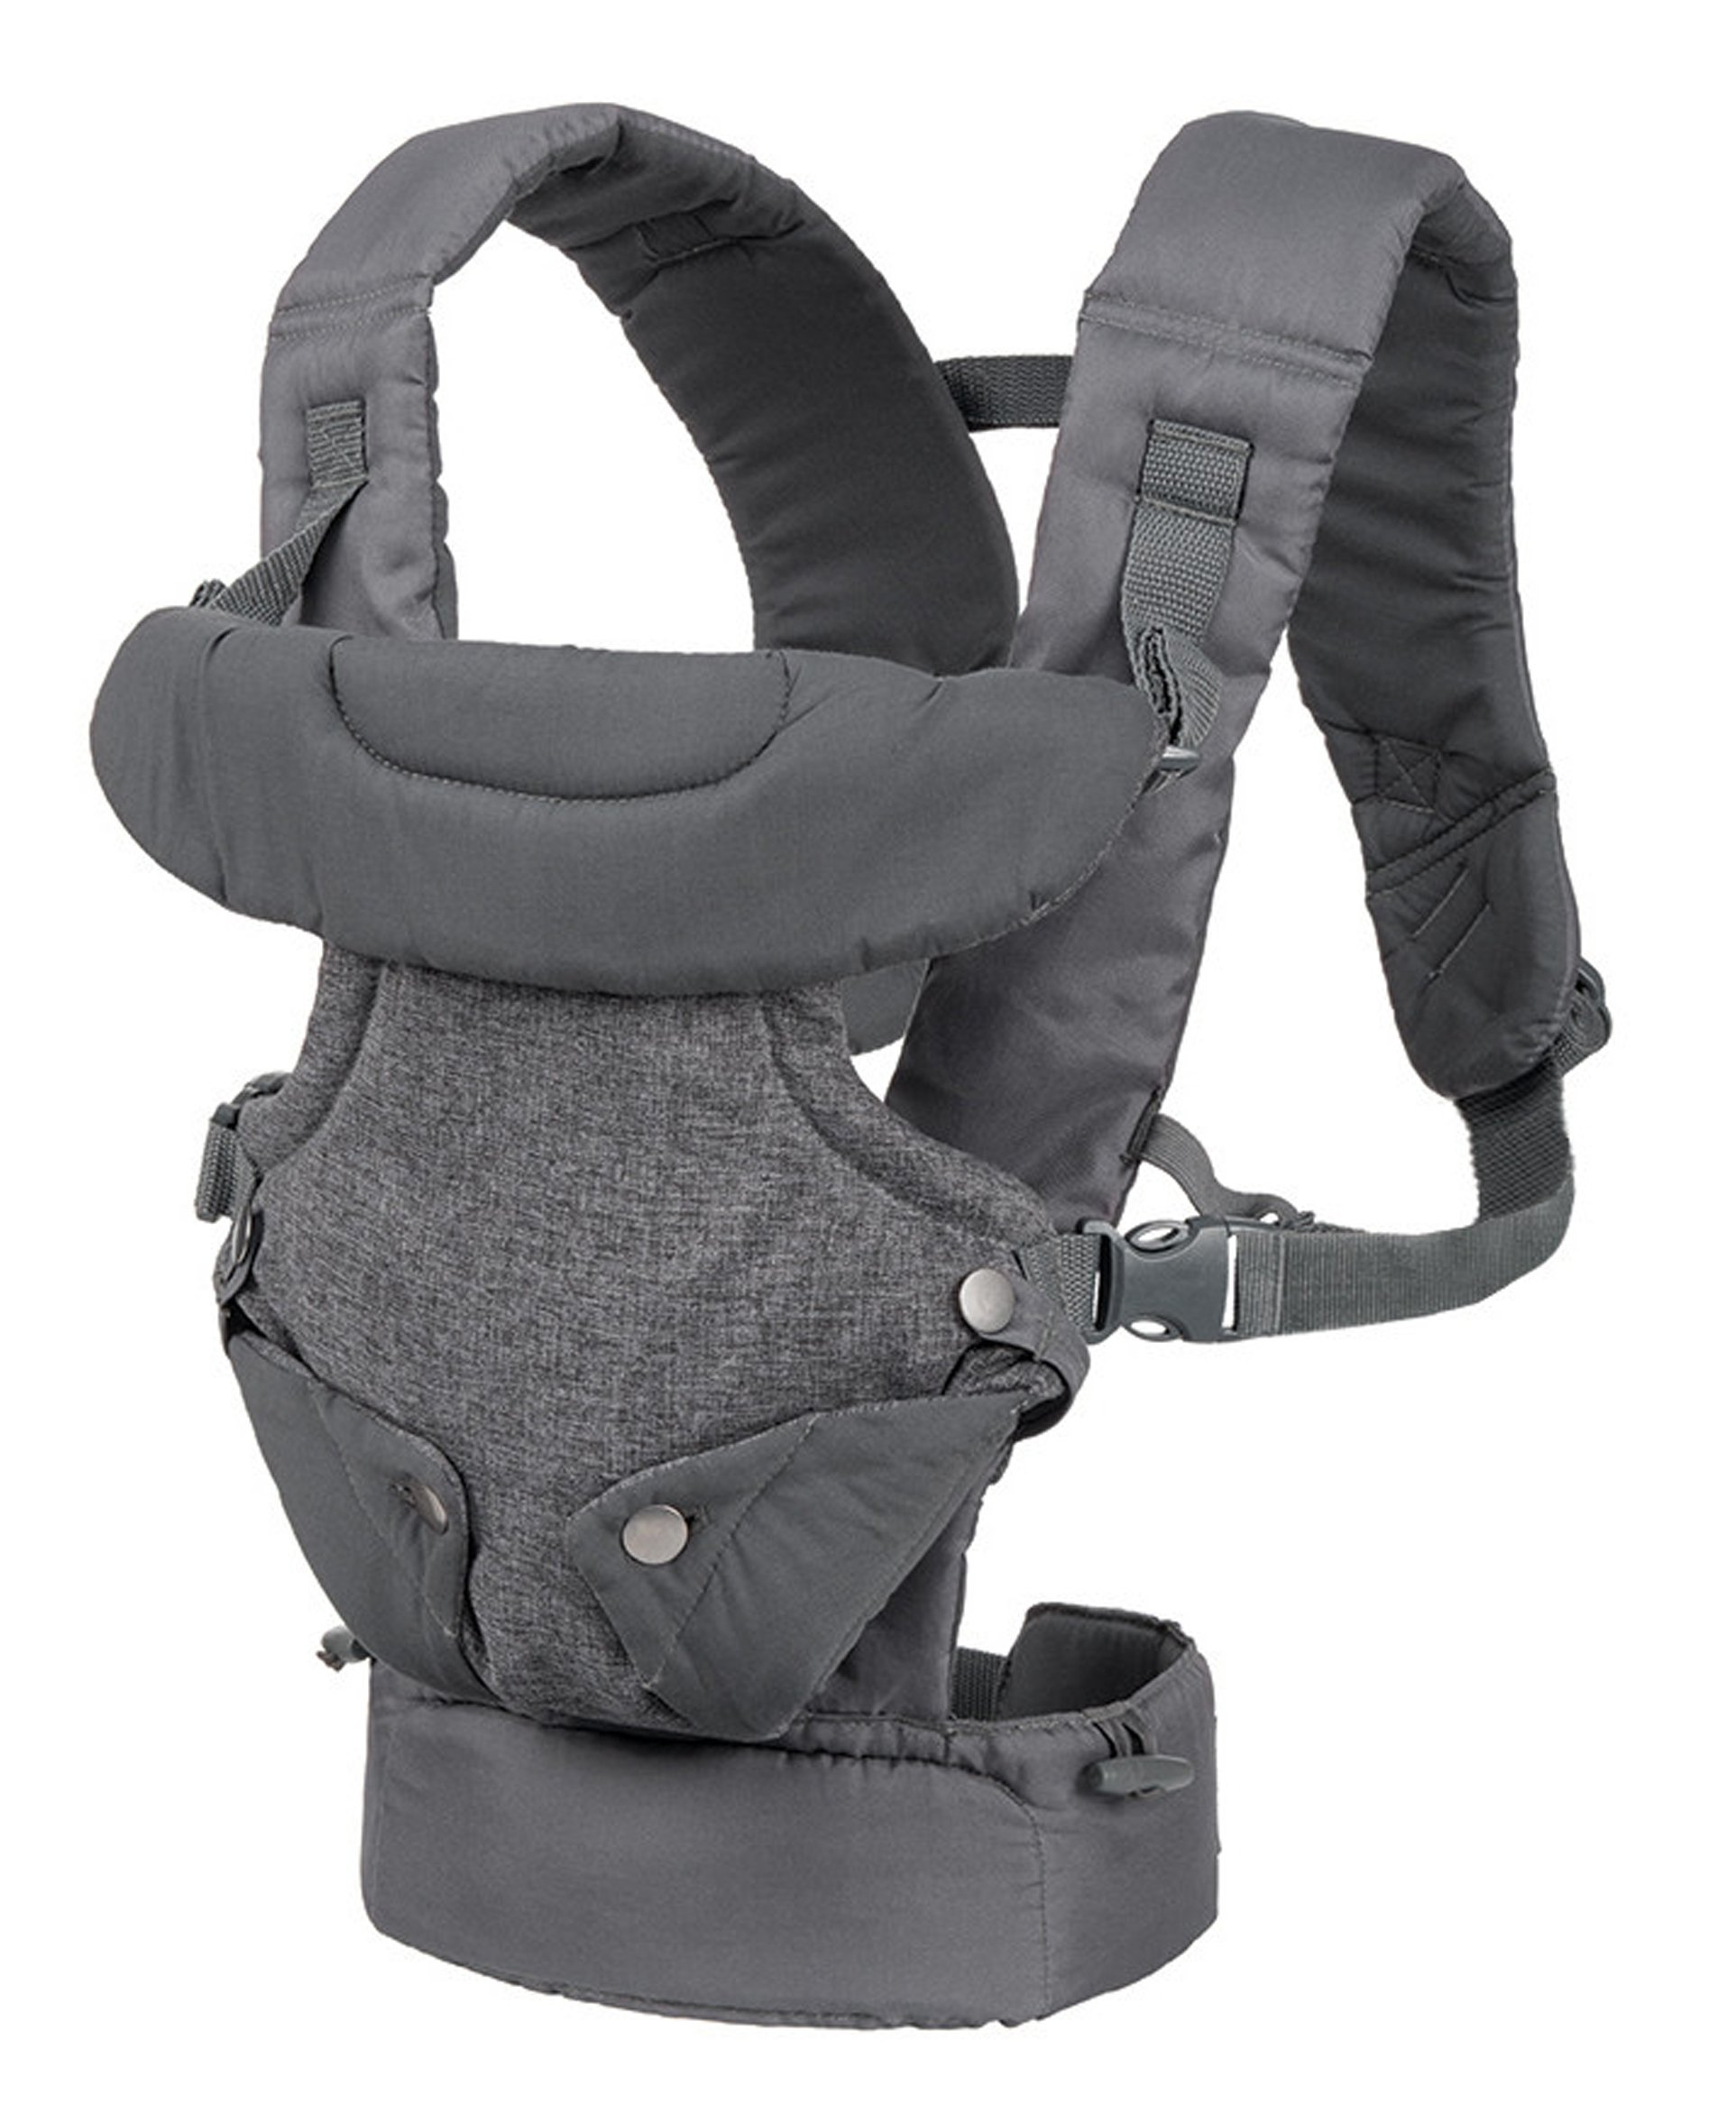 Infantino Flip Advanced 4-in-1 Convertible Baby Carrier, Light Grey Infantino Fully safety tested Carry children from 3.6-14.5 kgs 2